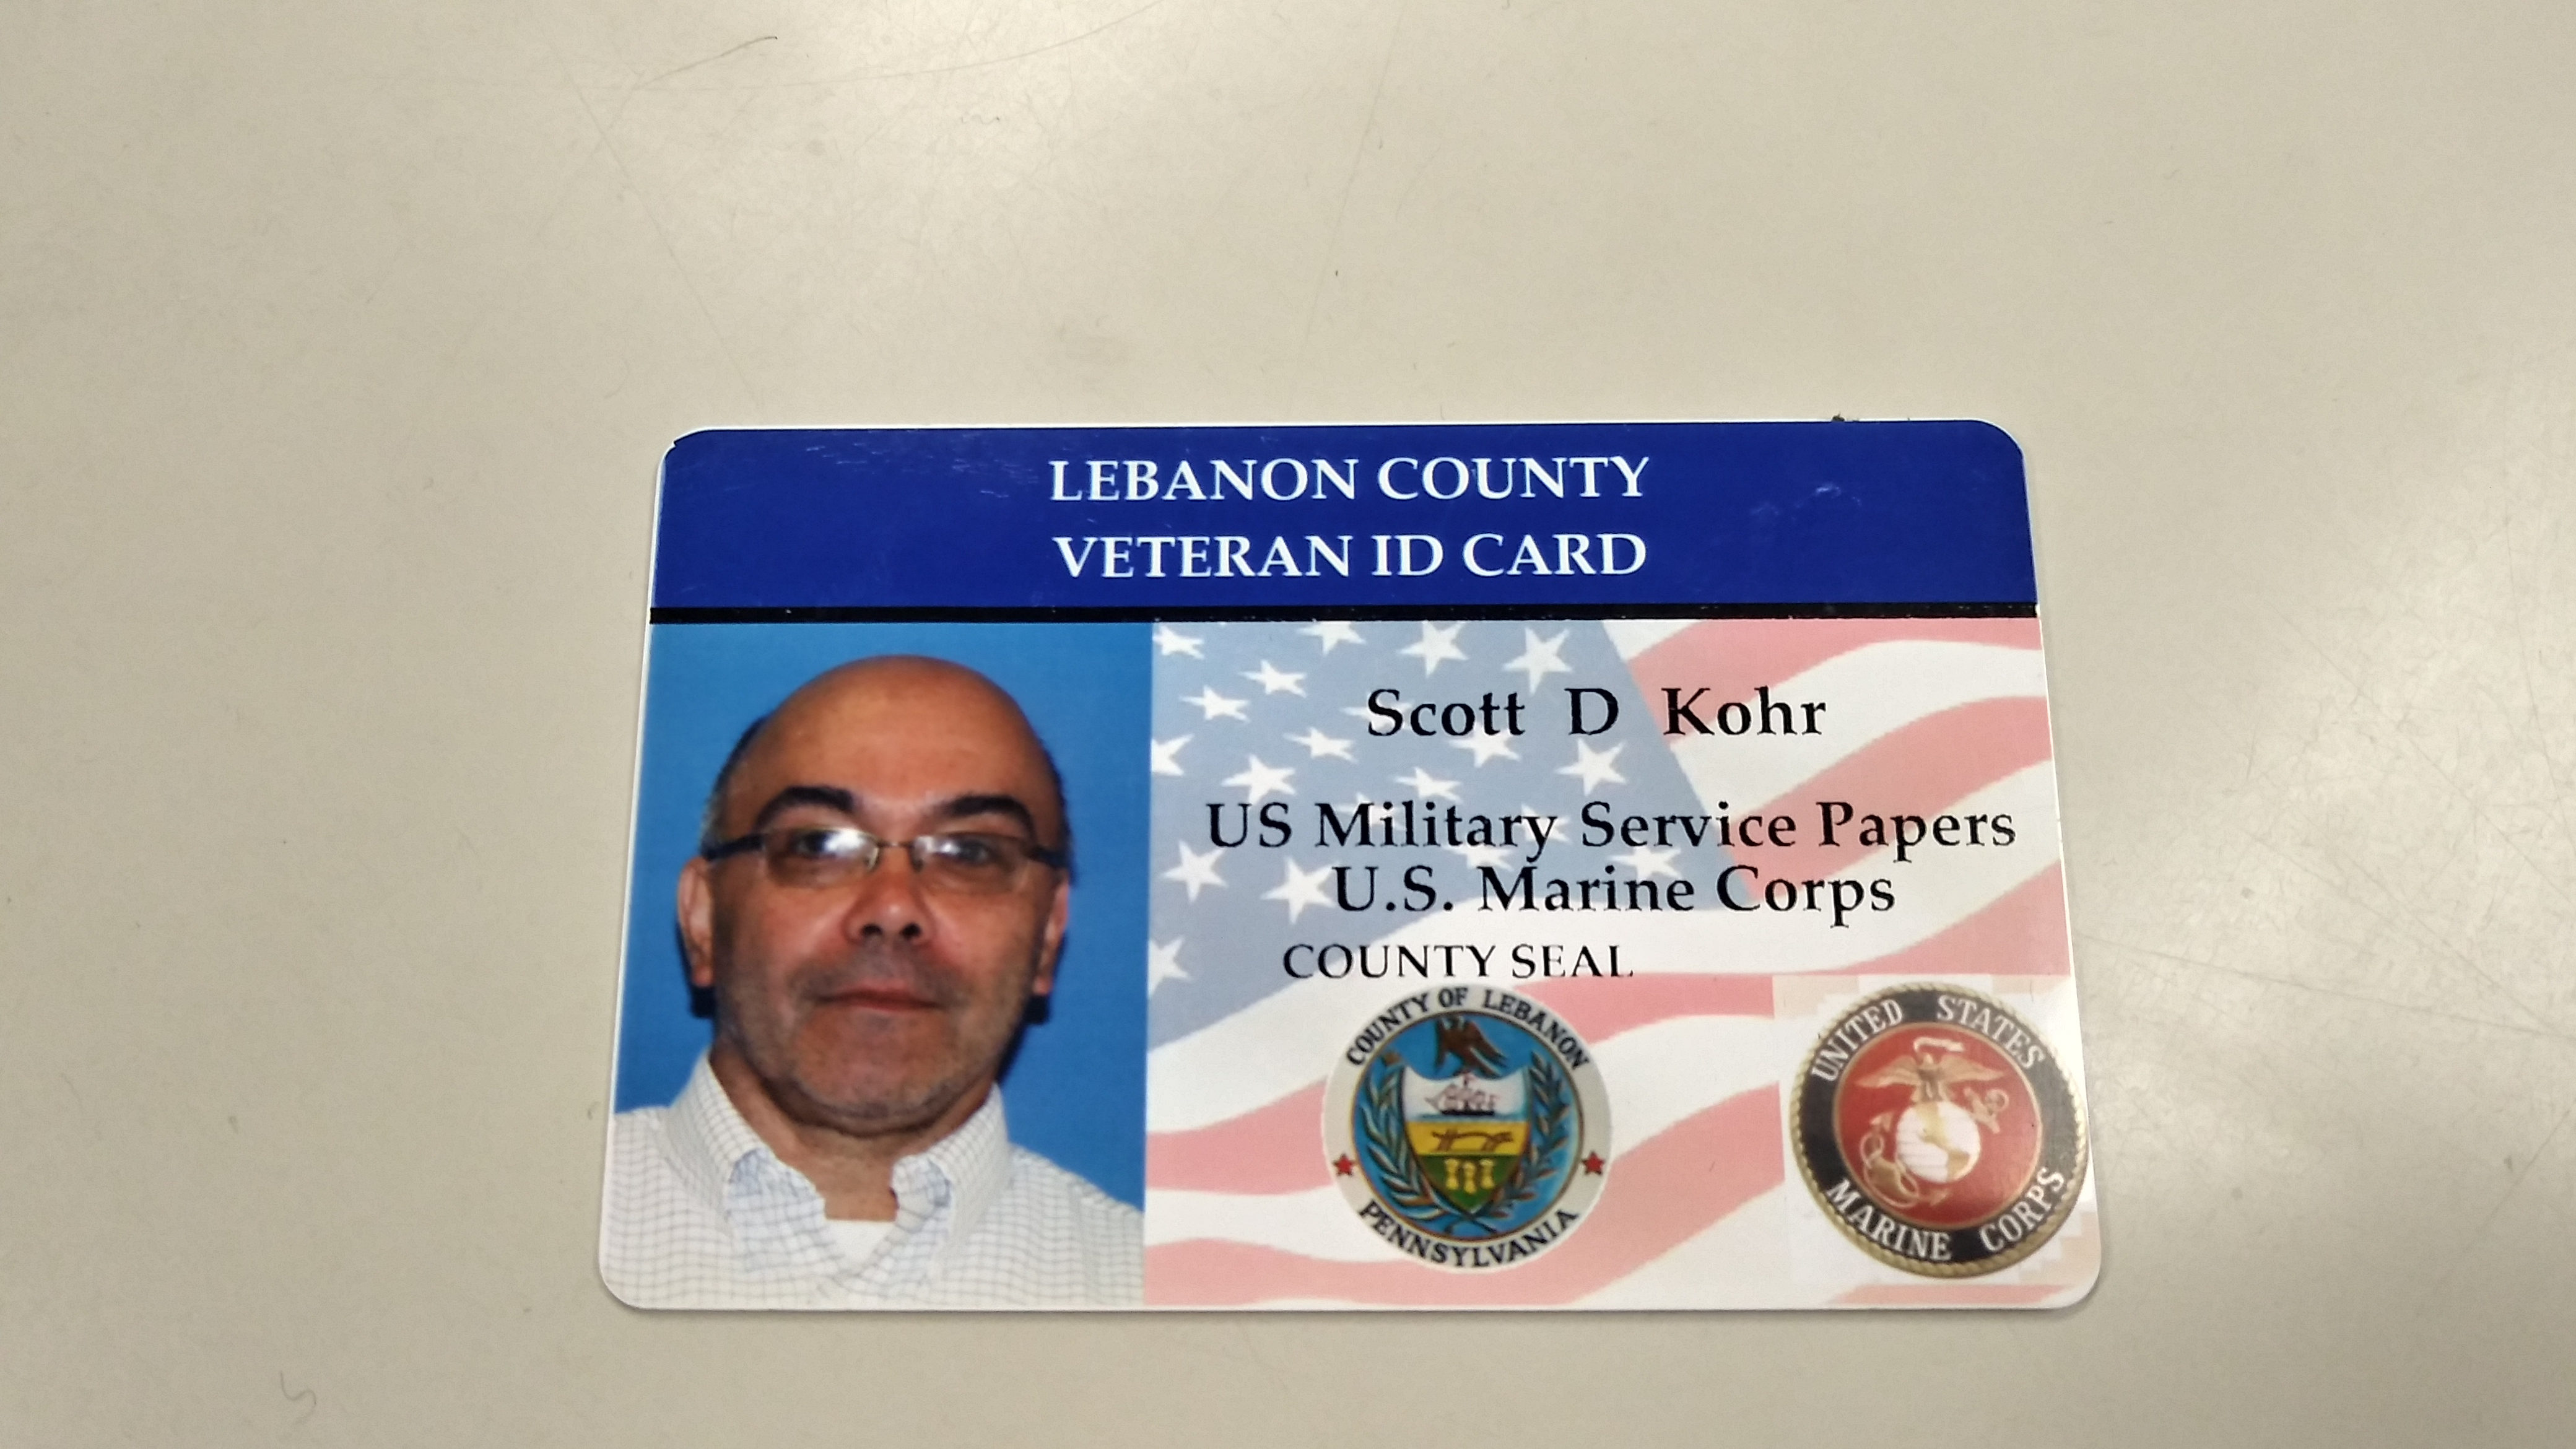 Lebanon County making free photo ID cards available to vets